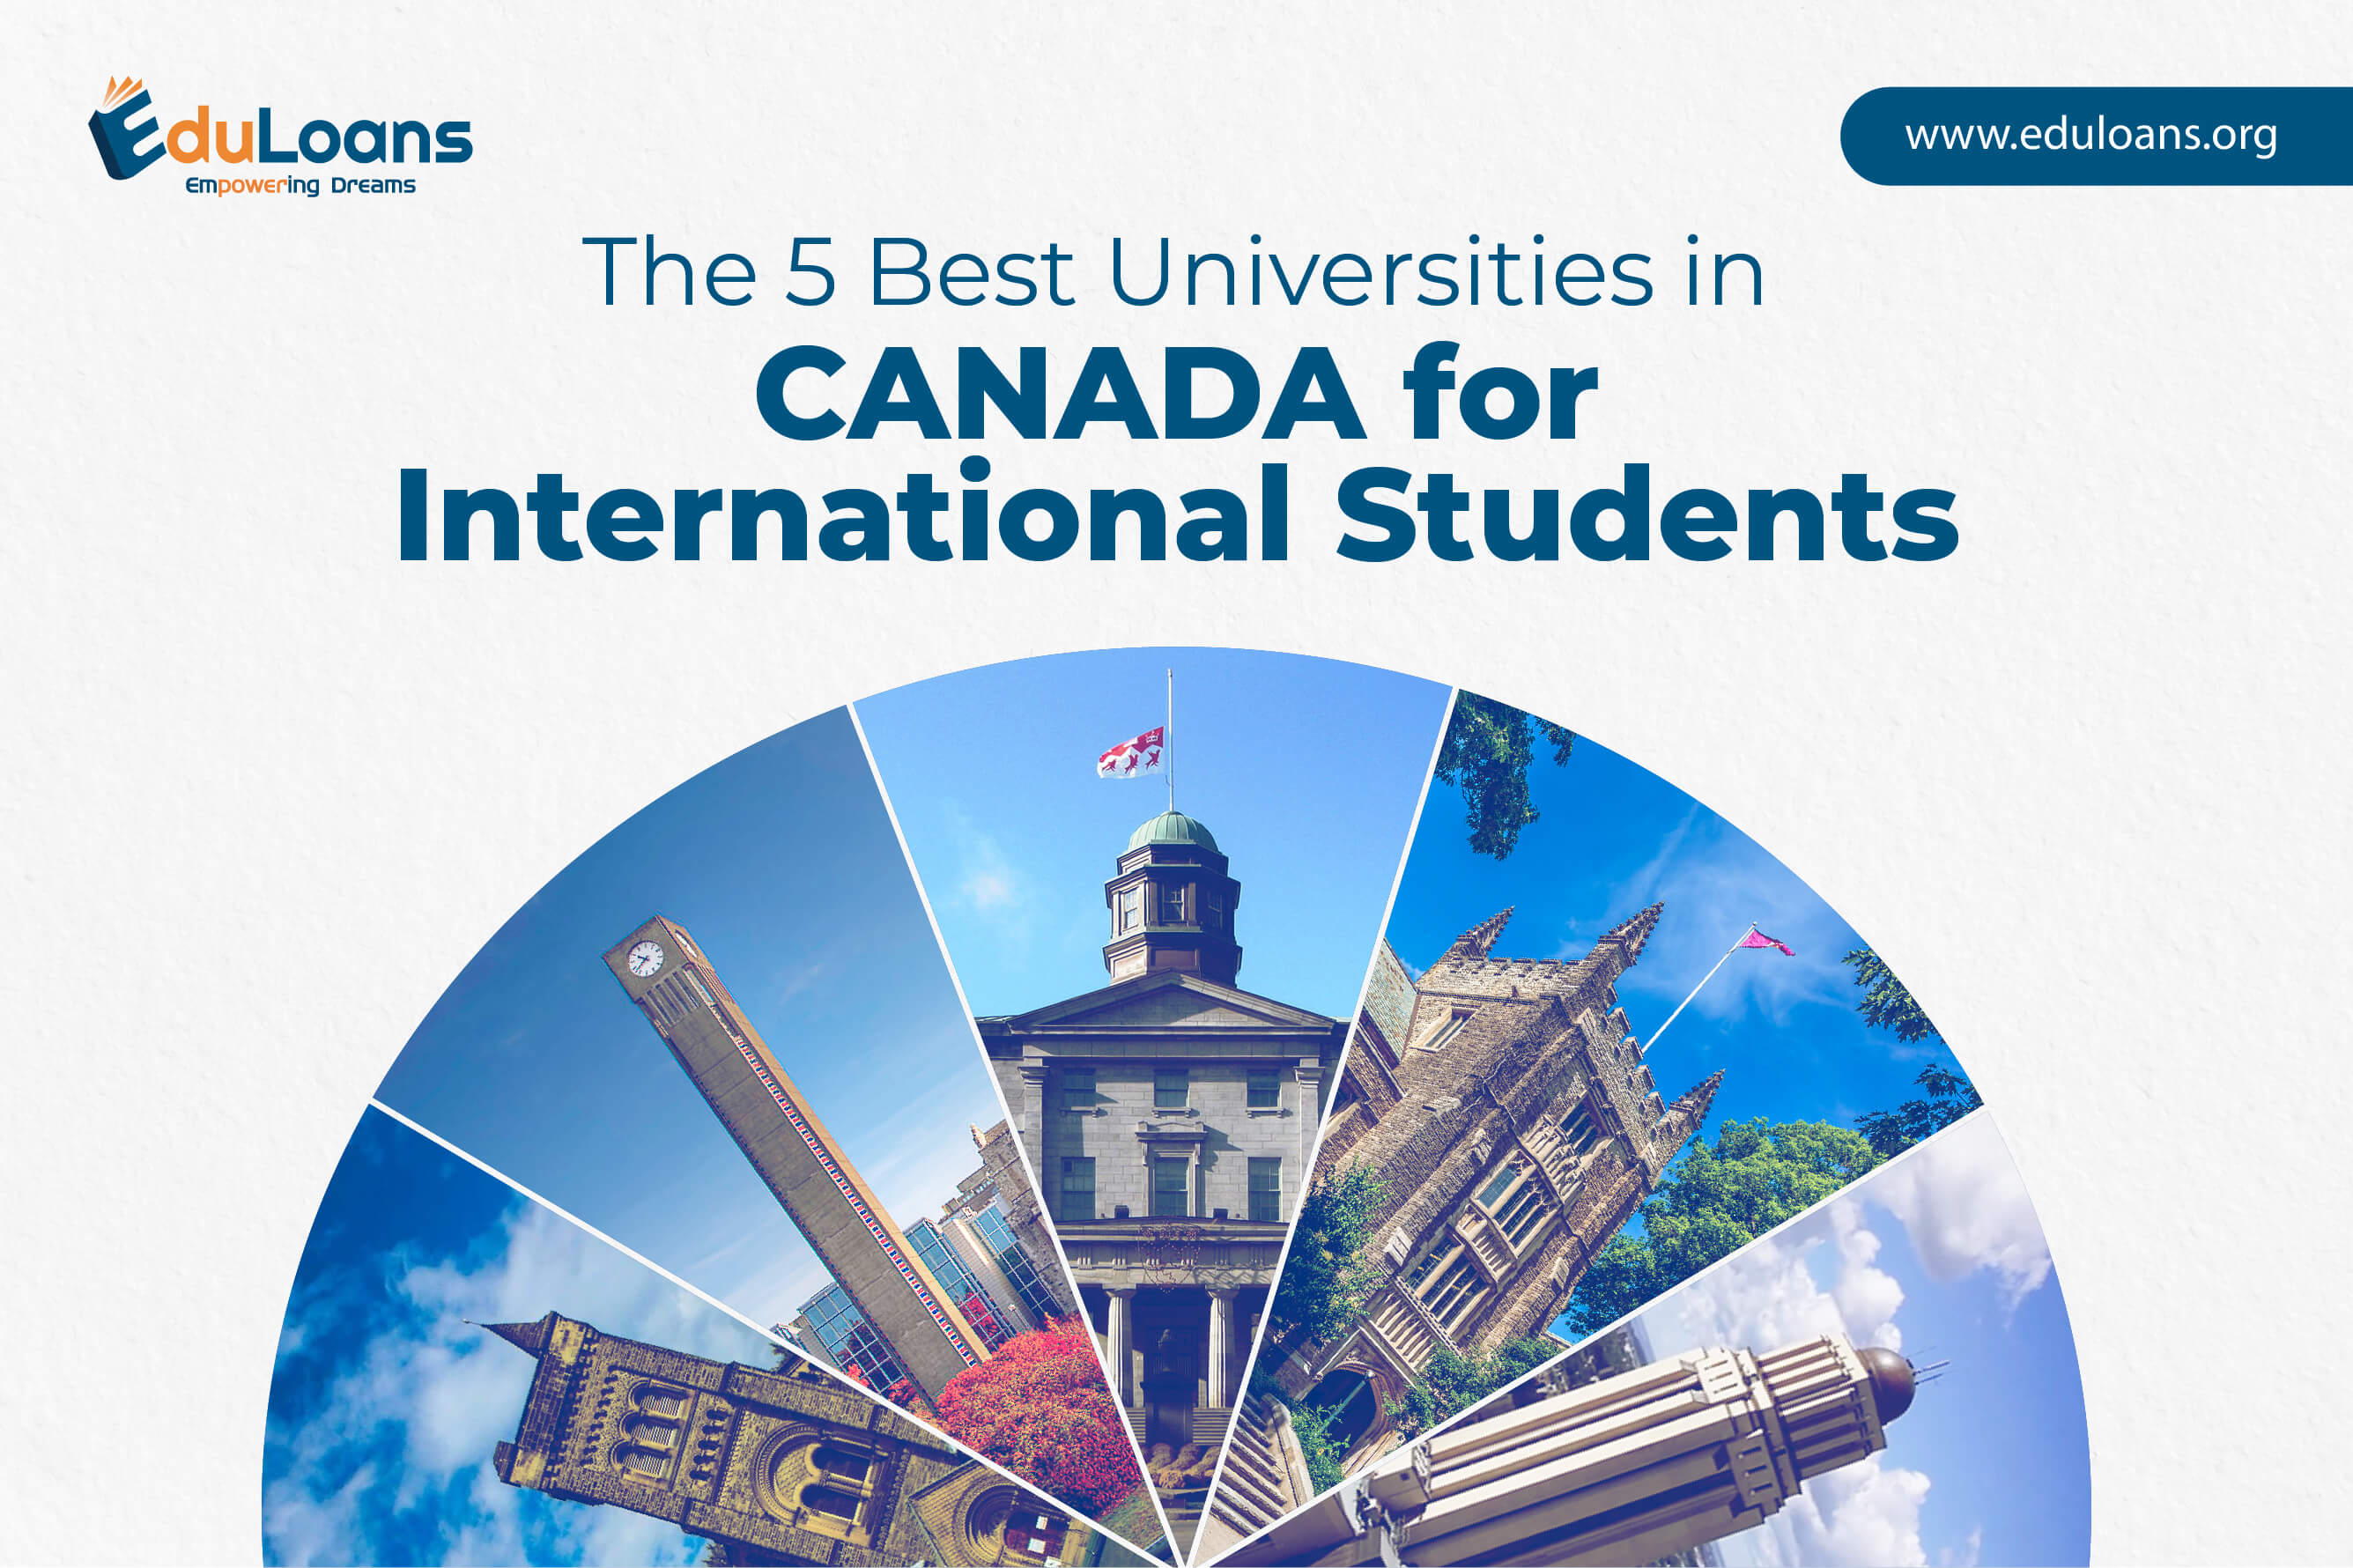 The 5 Best Universities in Canada for International Students